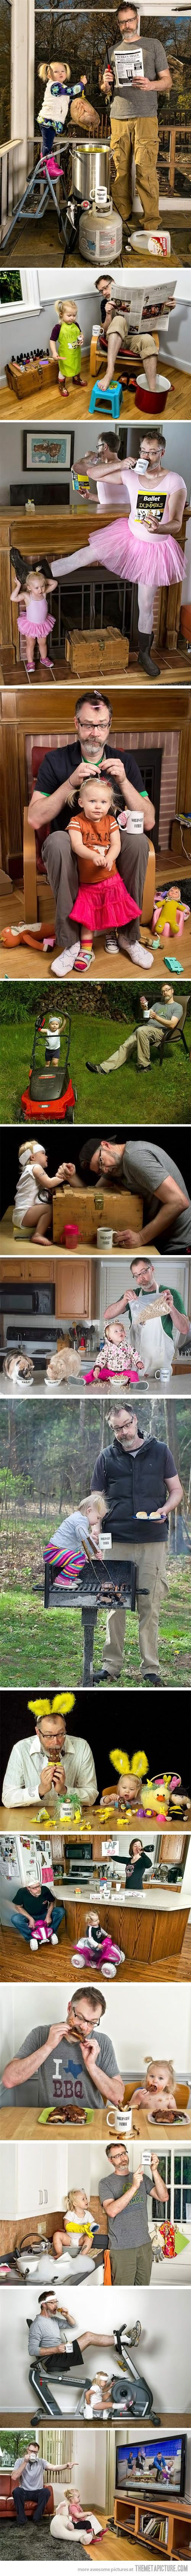 coolest dad ever :D TX BABY!: Picture, Giggle, Daddy Daughter Photo, So Funny, Dads, Father Daughter, Coolest Dad